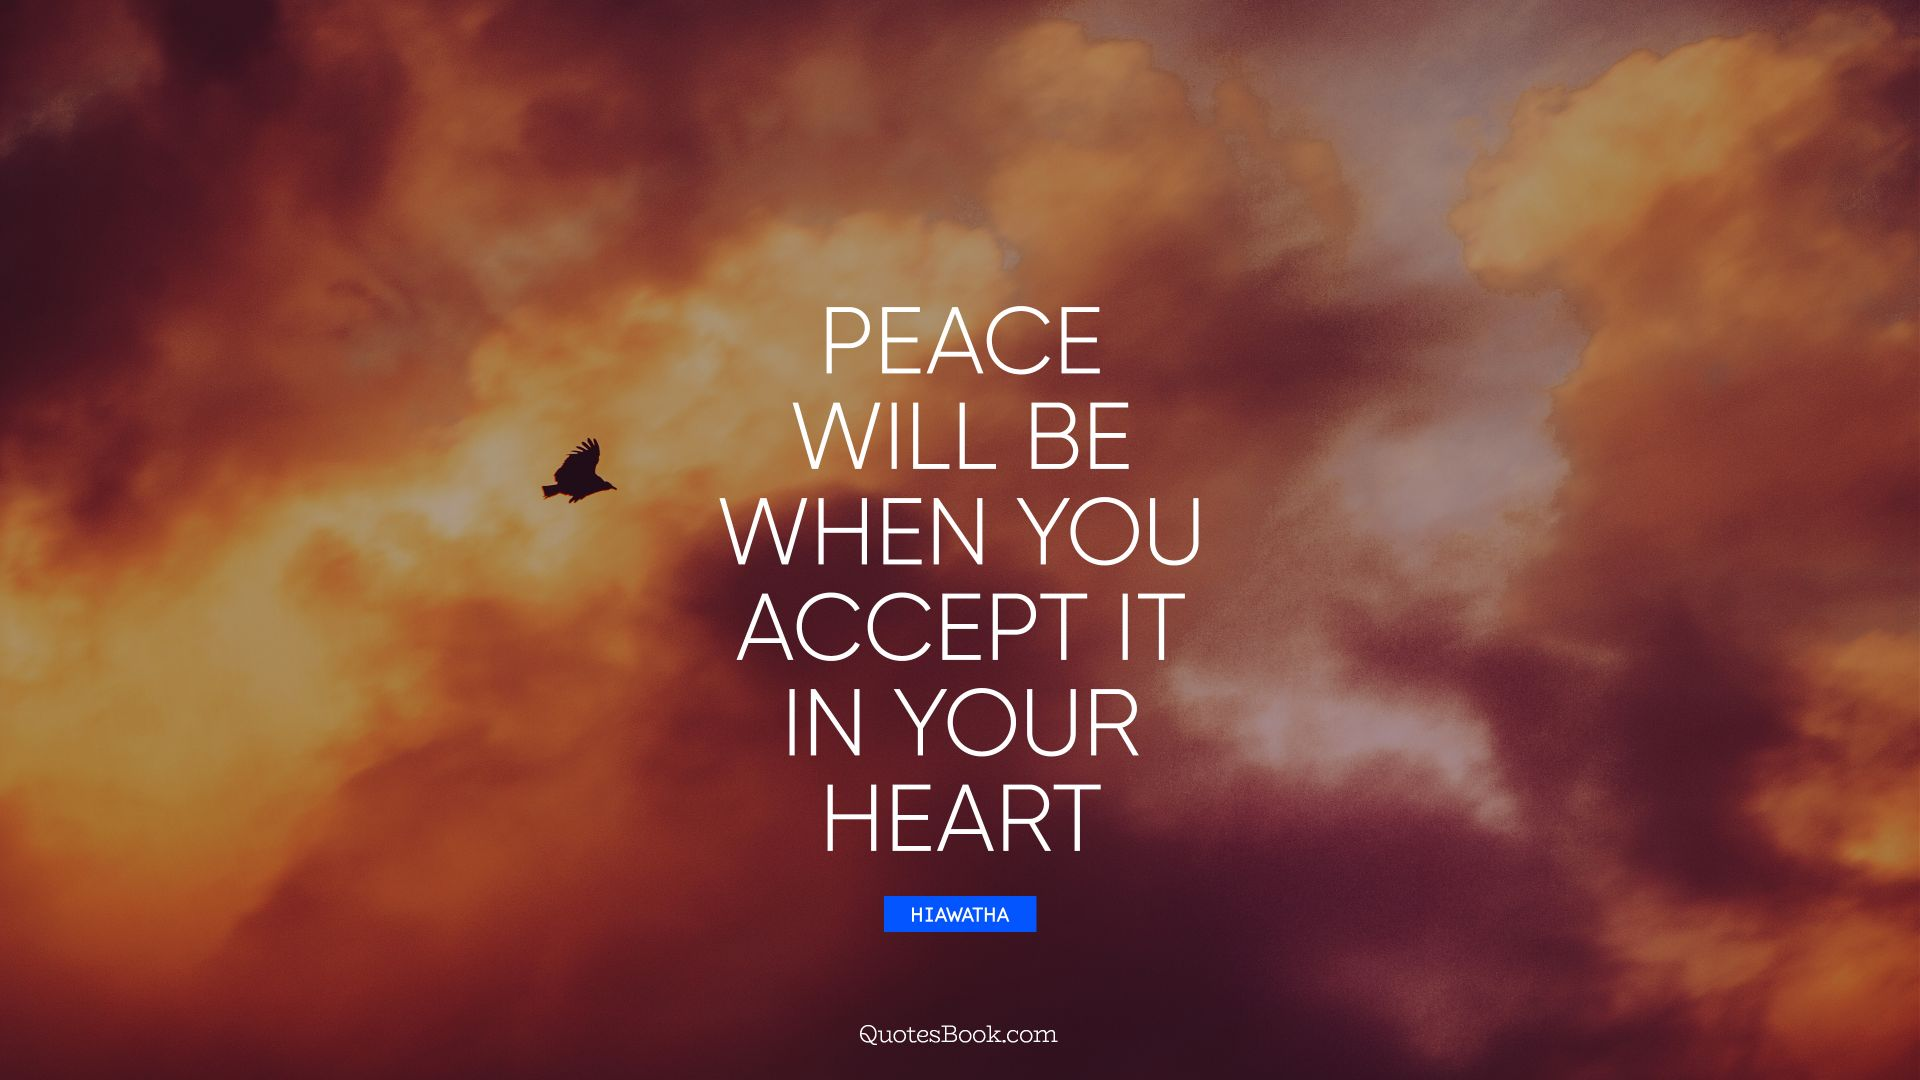 Peace will be when you accept it in your heart. - Quote by Hiawatha